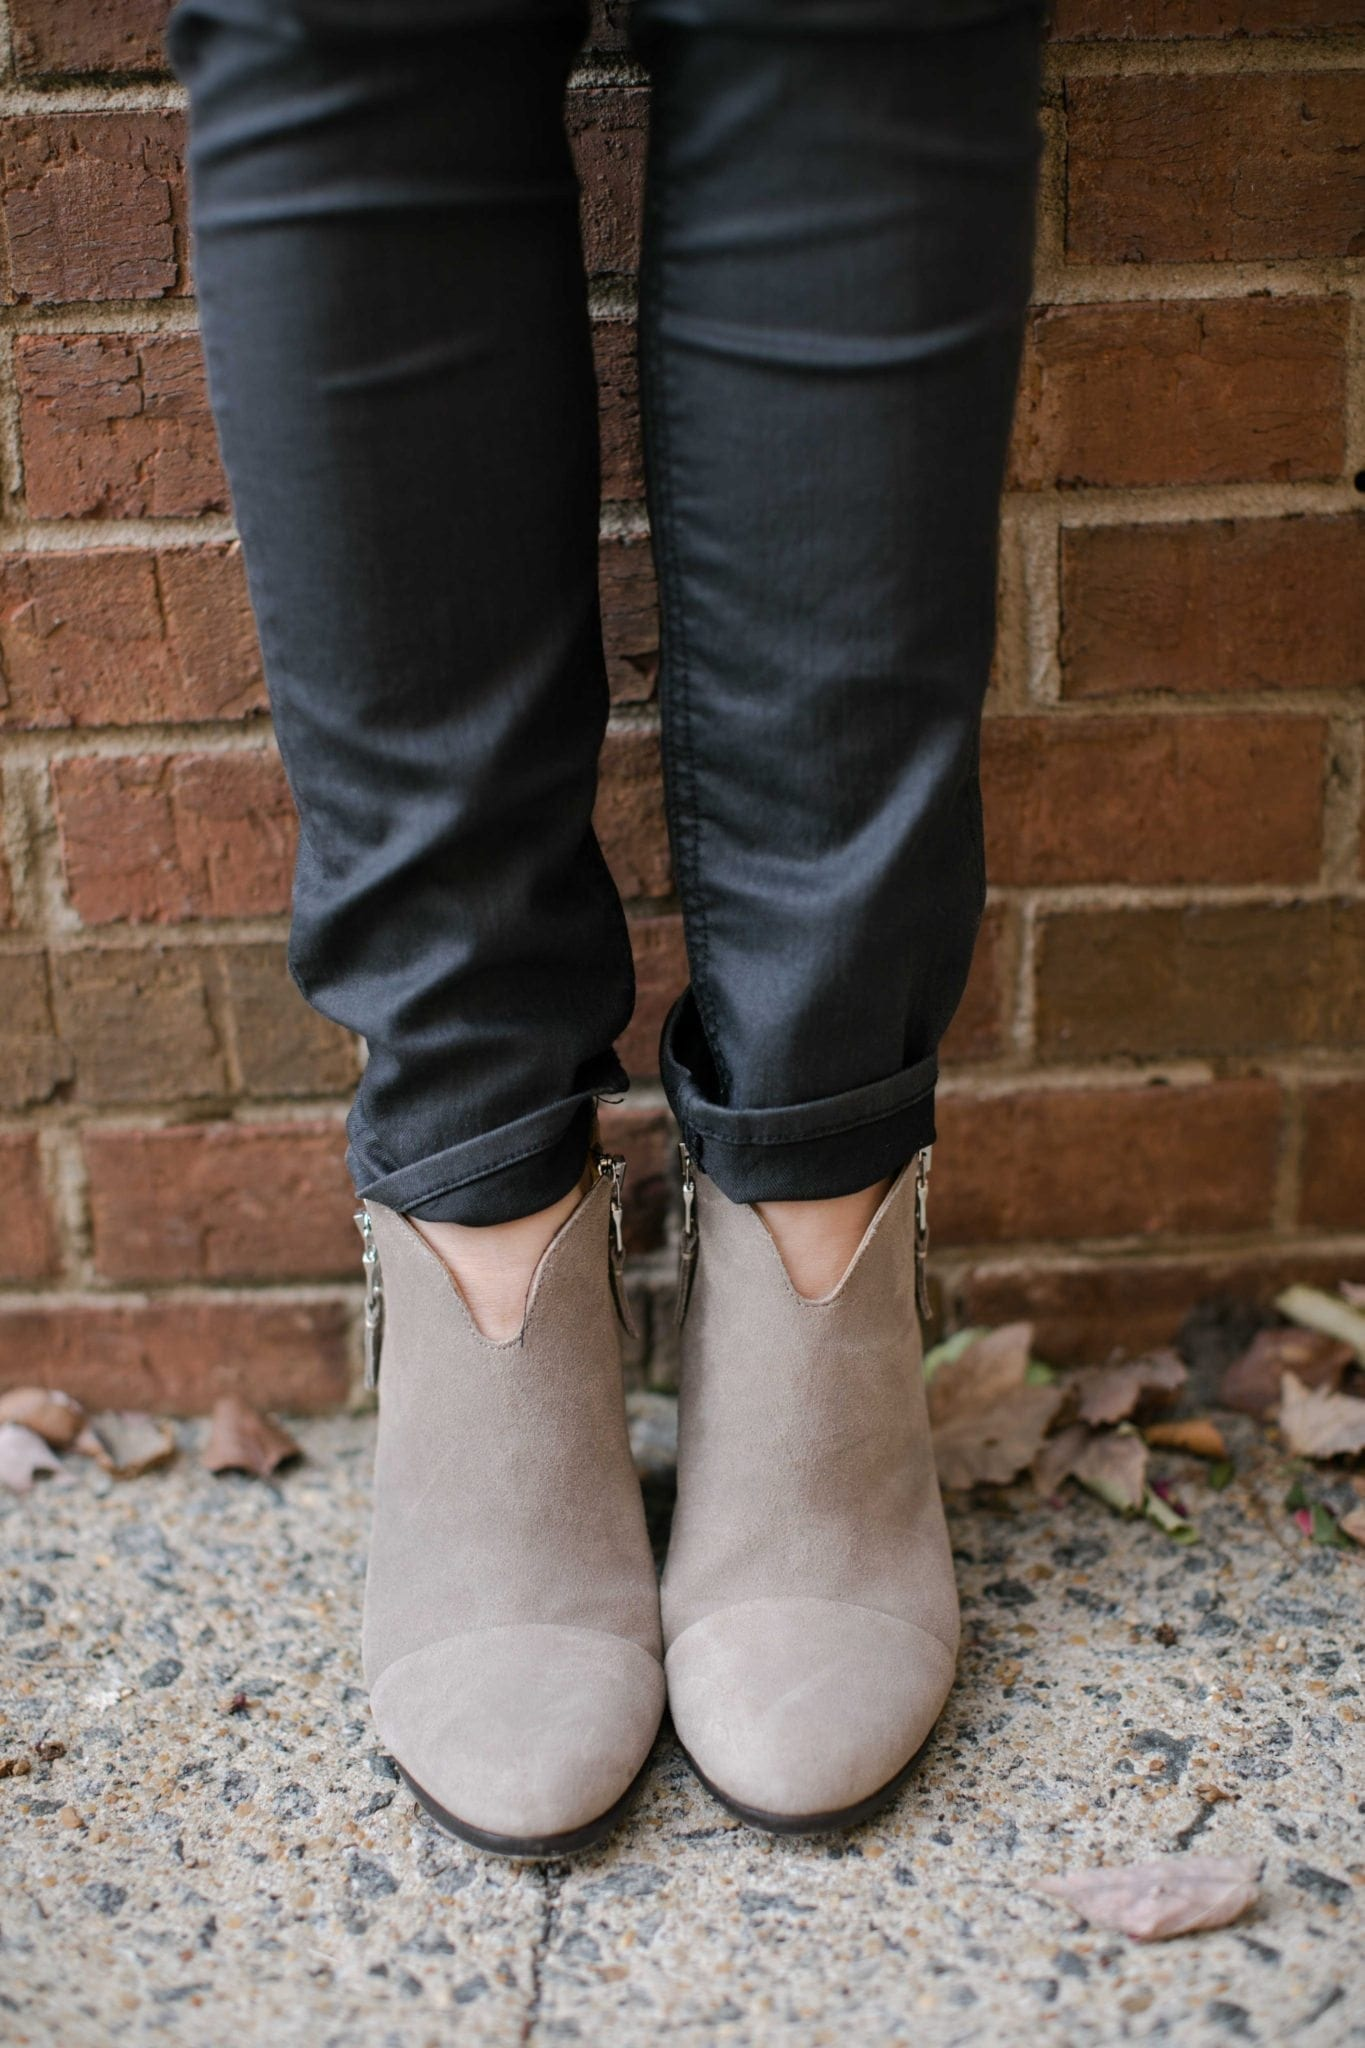 suede booties standing by leaves and brick wall